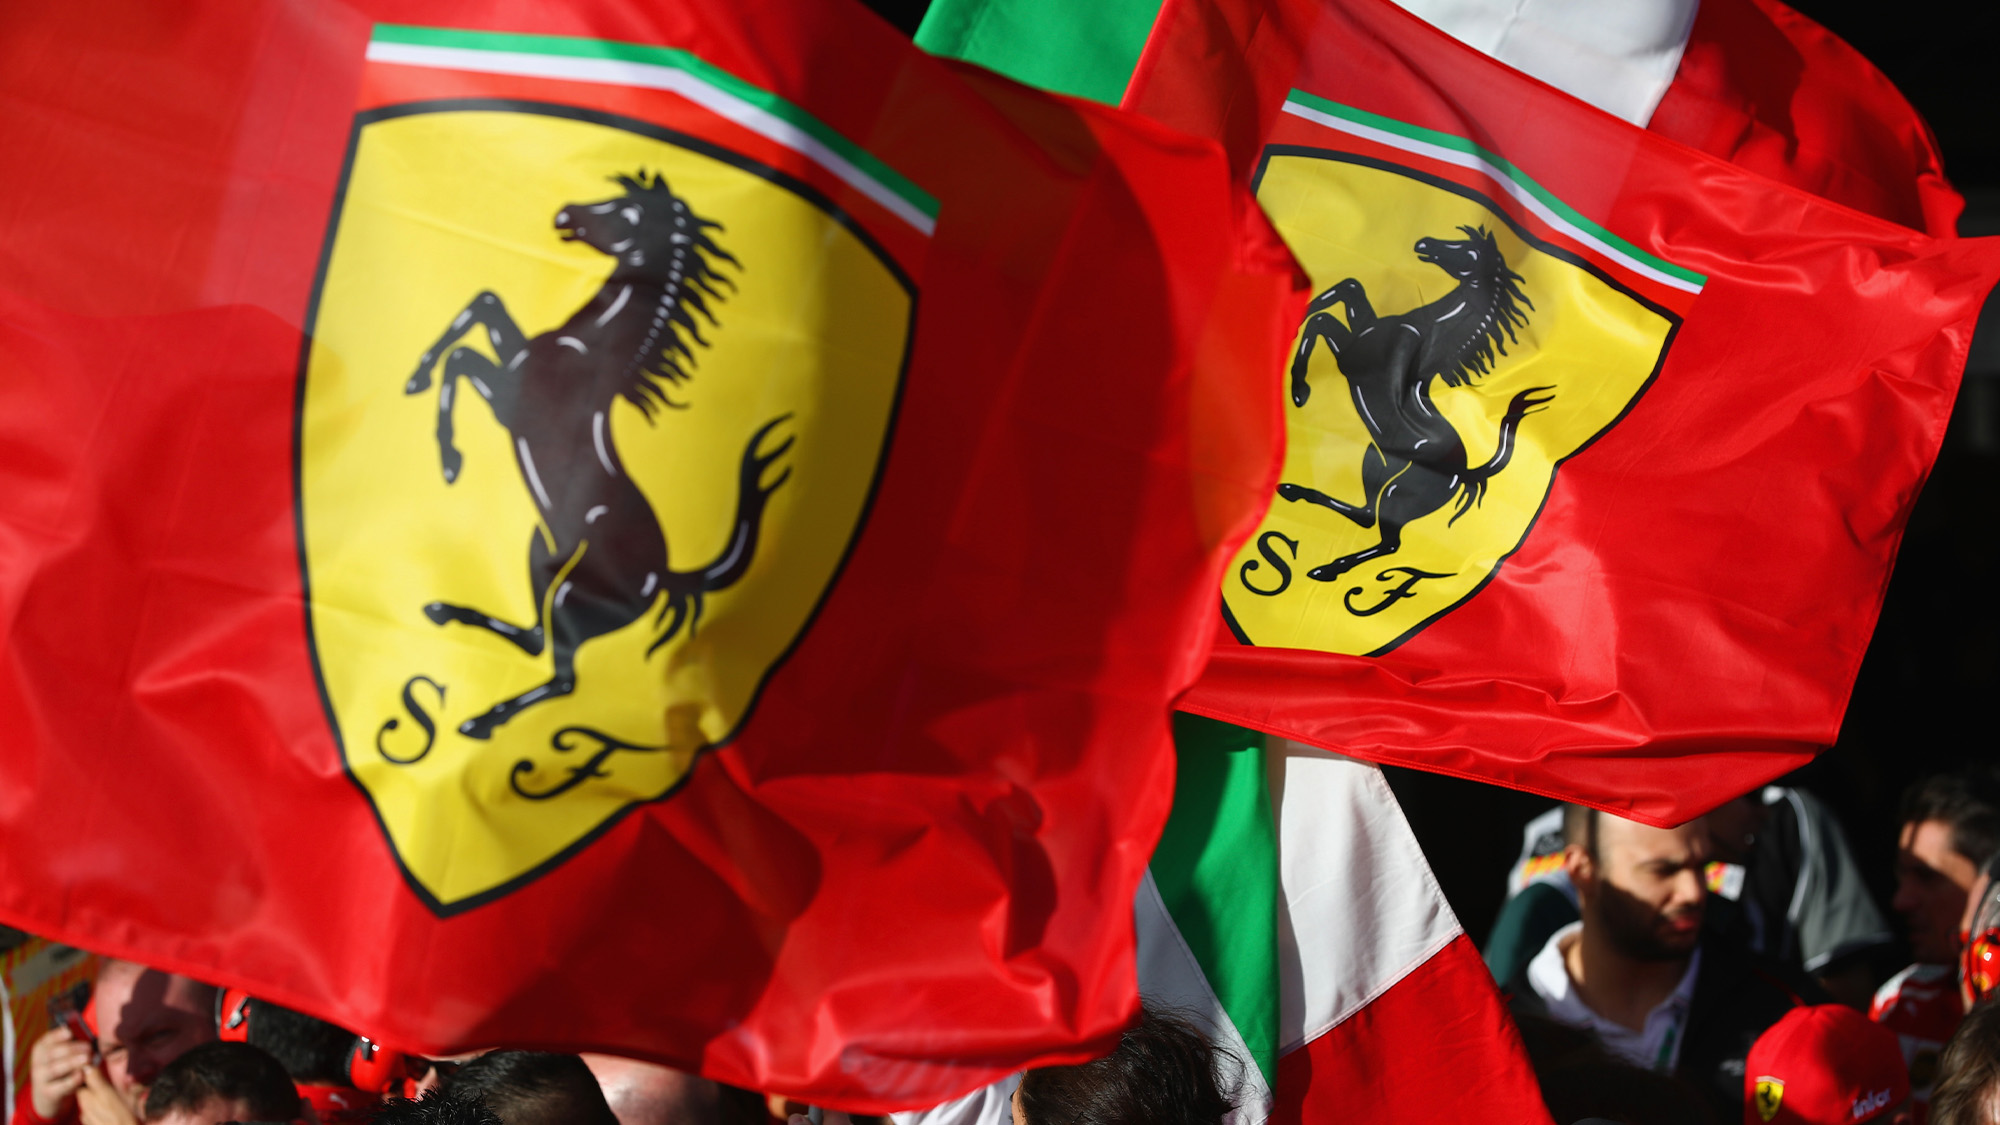 Ferrari and Italian flags